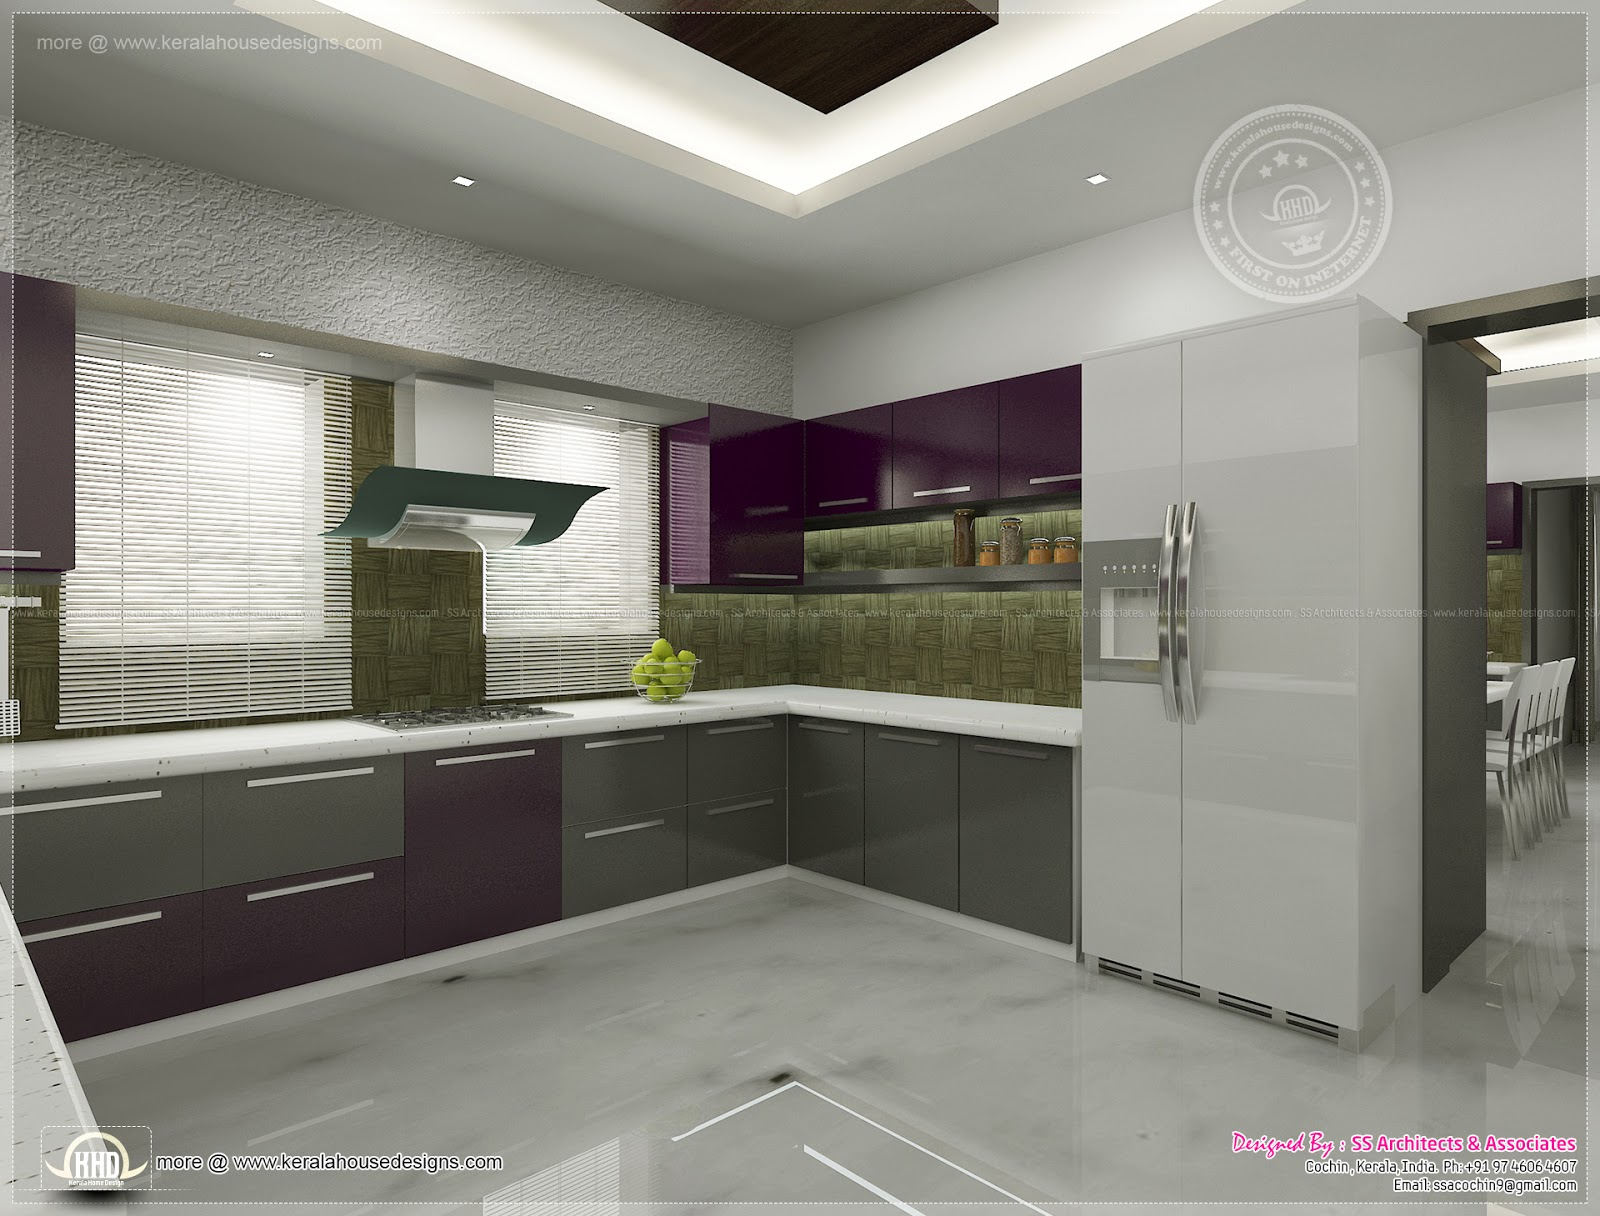 Kitchen interior views by ss architects cochin kerala Kitchen interior design